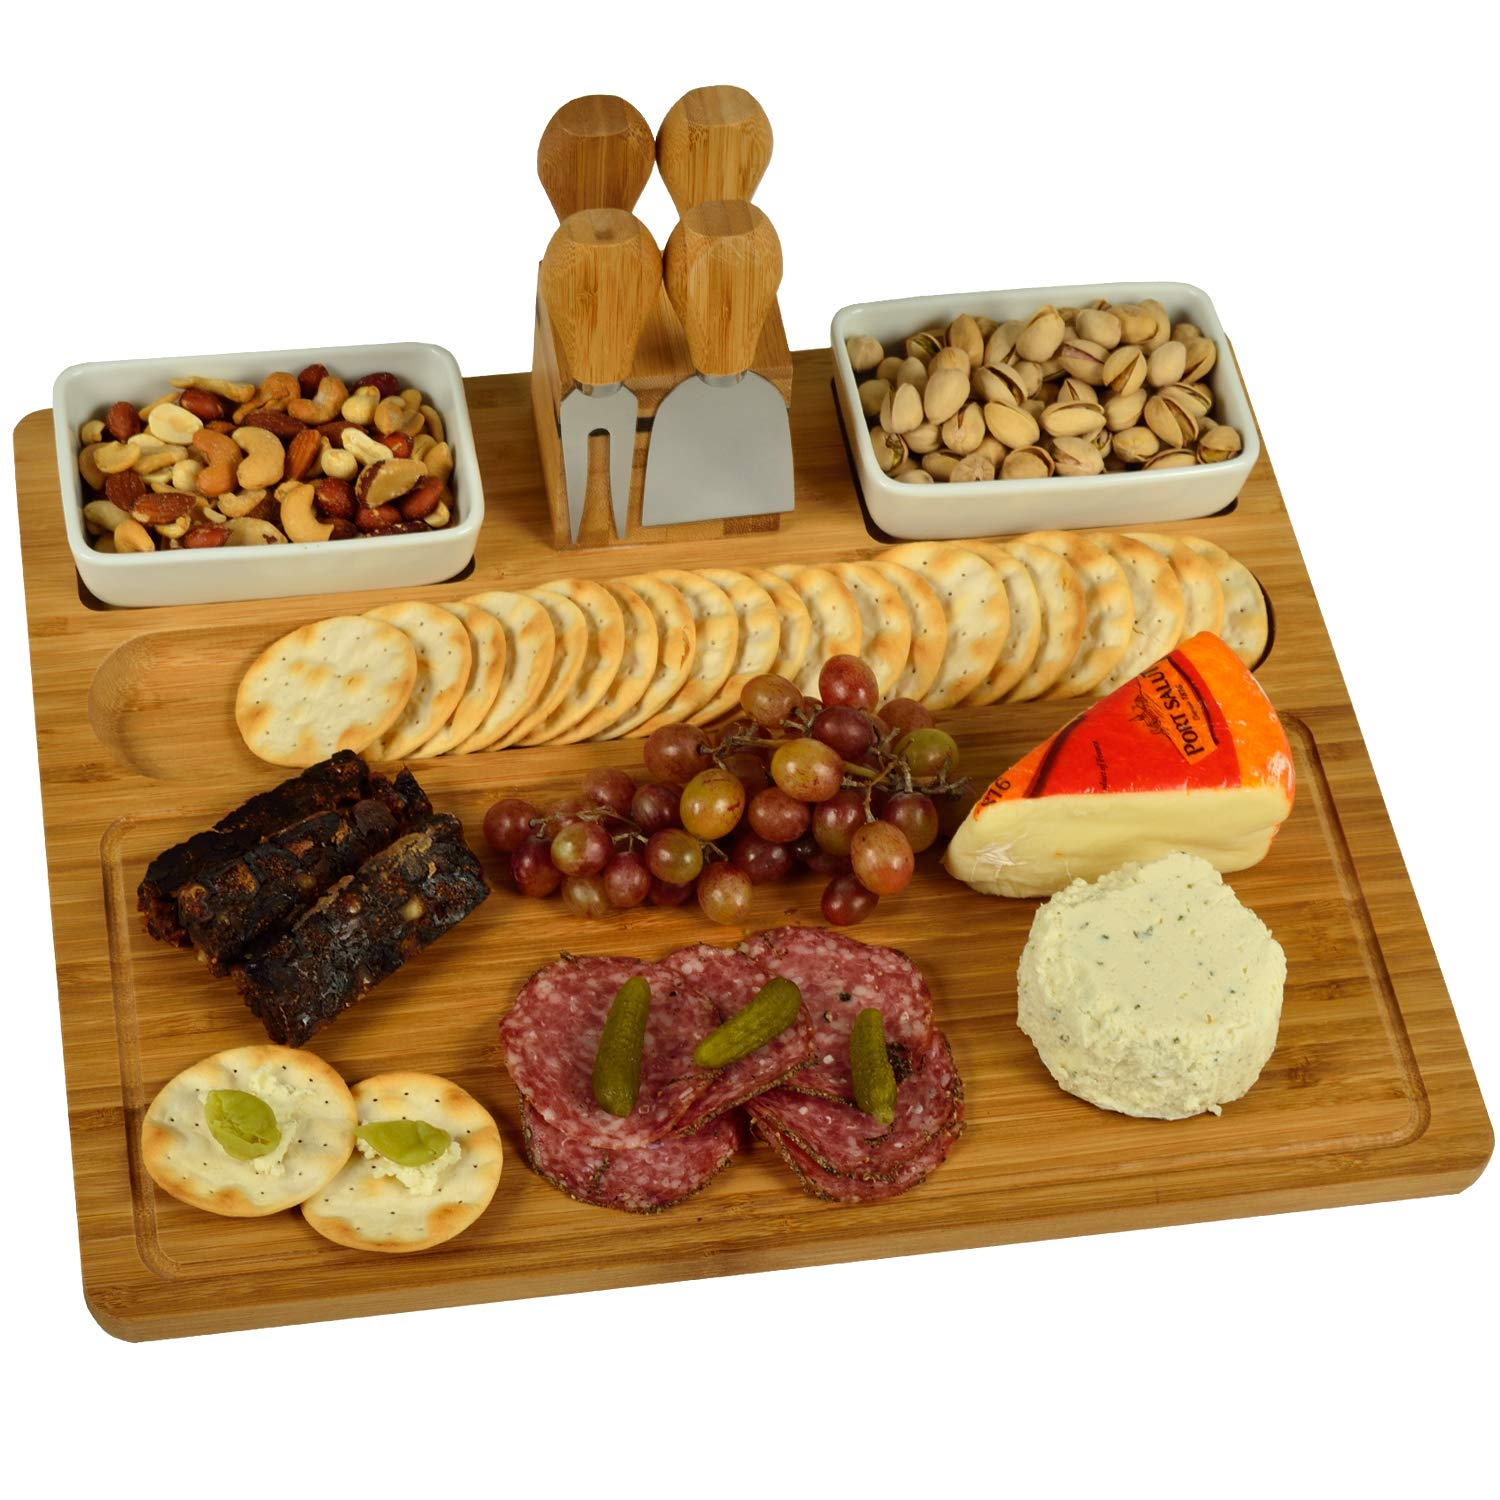 Picnic at Ascot Large Bamboo Cheese Board/Charcuterie Platter with 4 Stainless Steel Tools & 2 Ceramic Bowls - 16'' x 13'' - Designed & Quality Checked in the USA